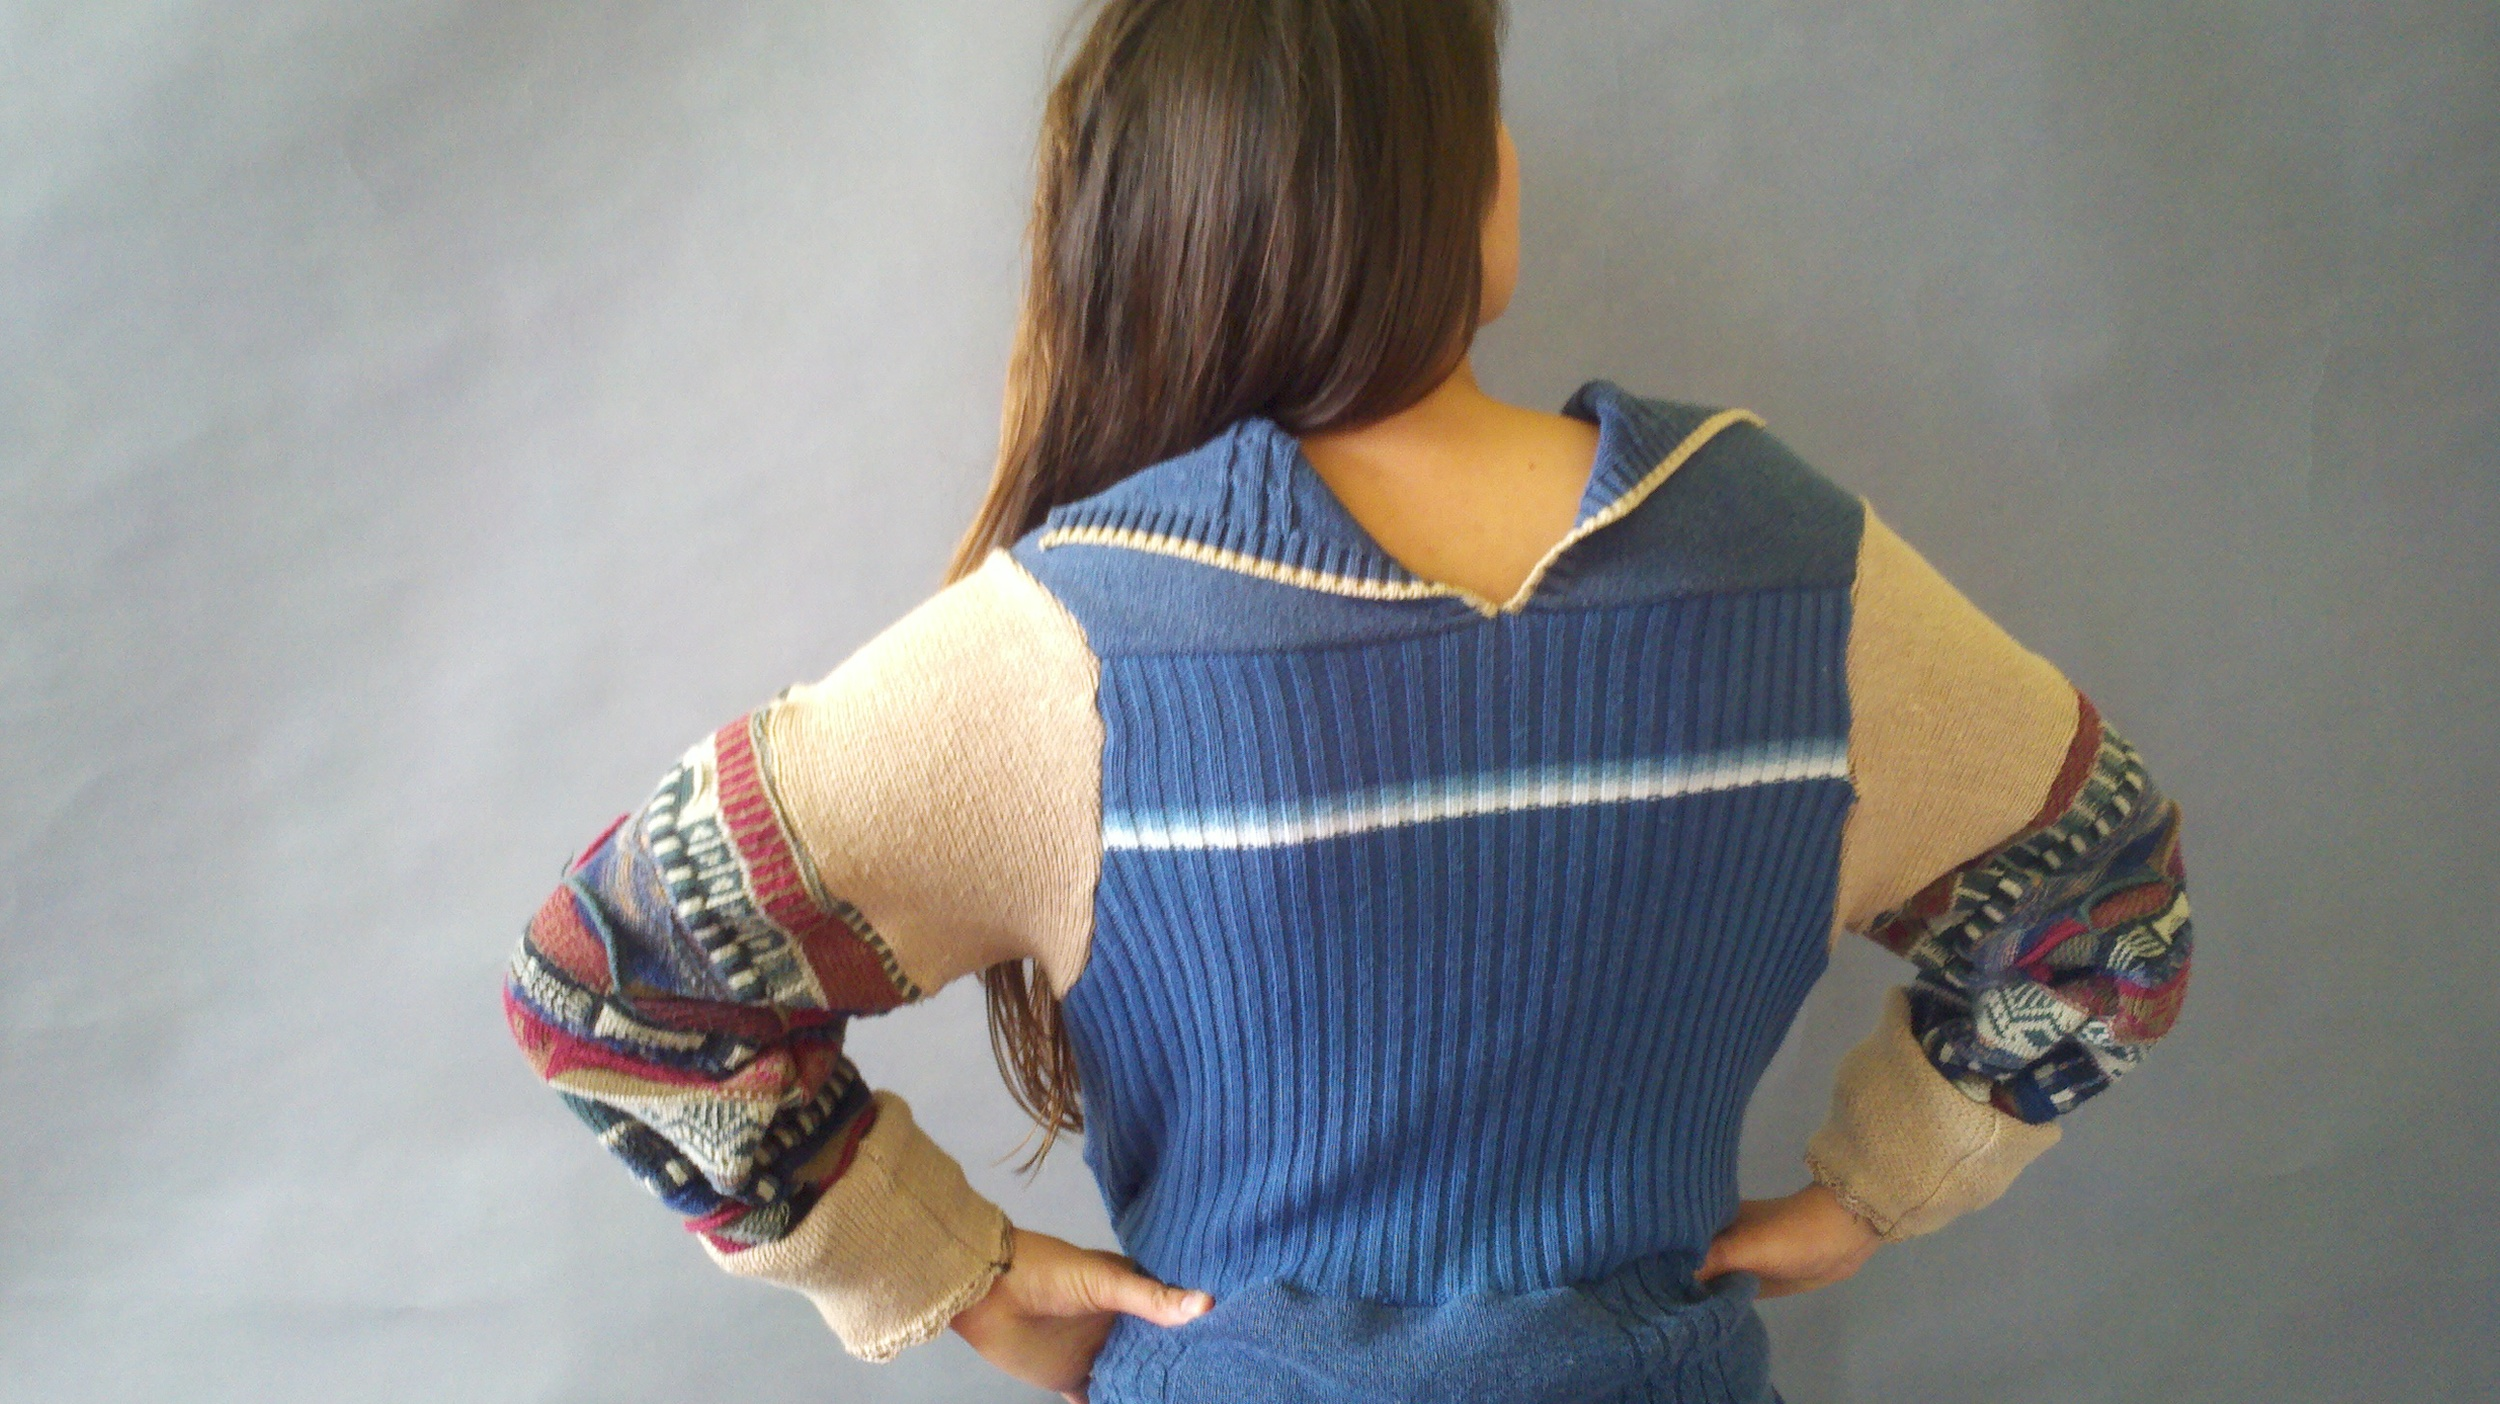 Only One UP cycled Sweater